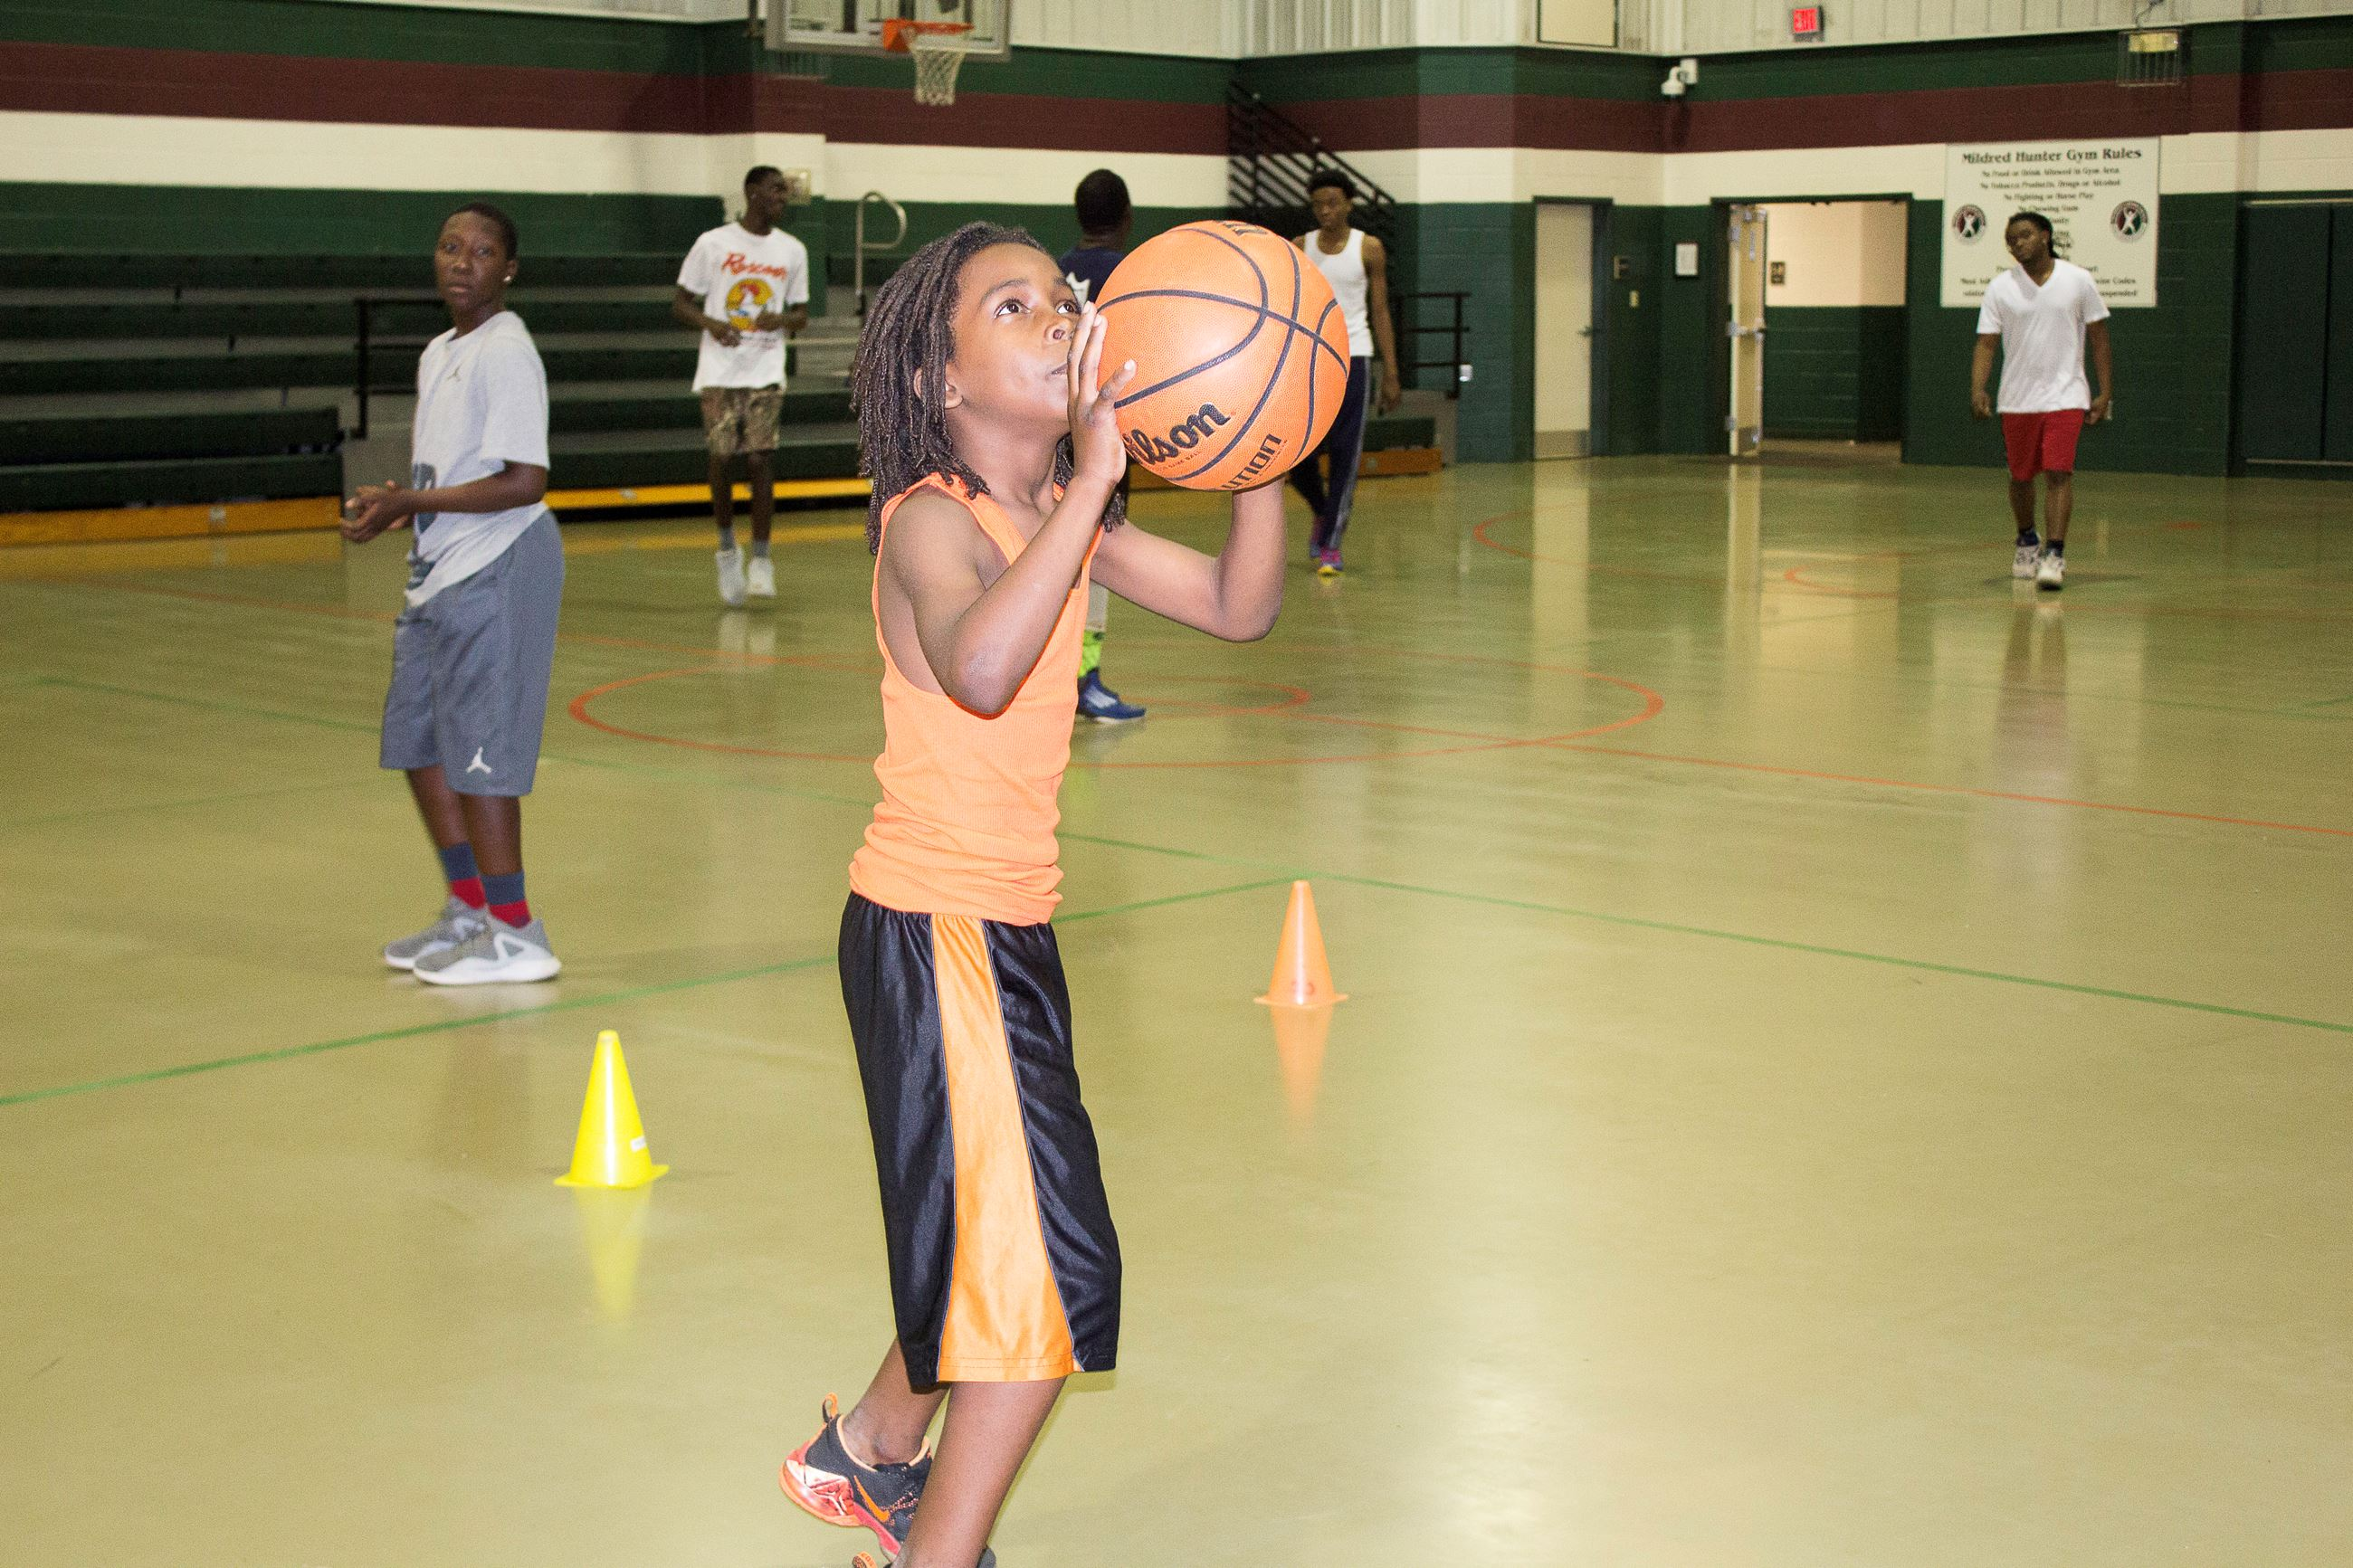 Image of child playing basketball.